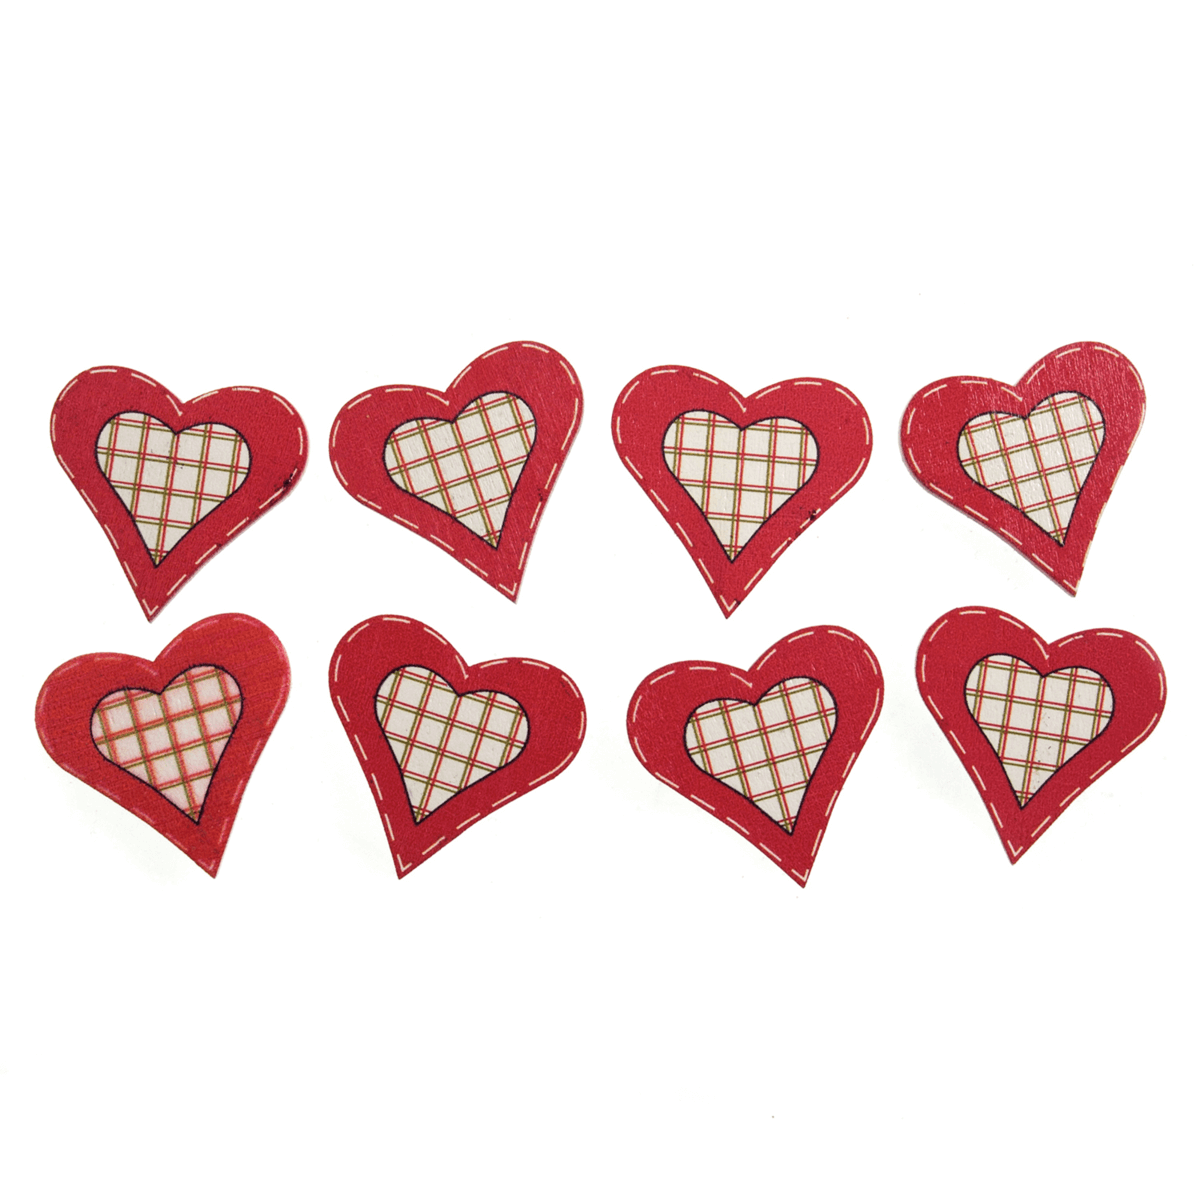 8 x Christmas Red Check Hearts Craft Embellishments Scrap booking